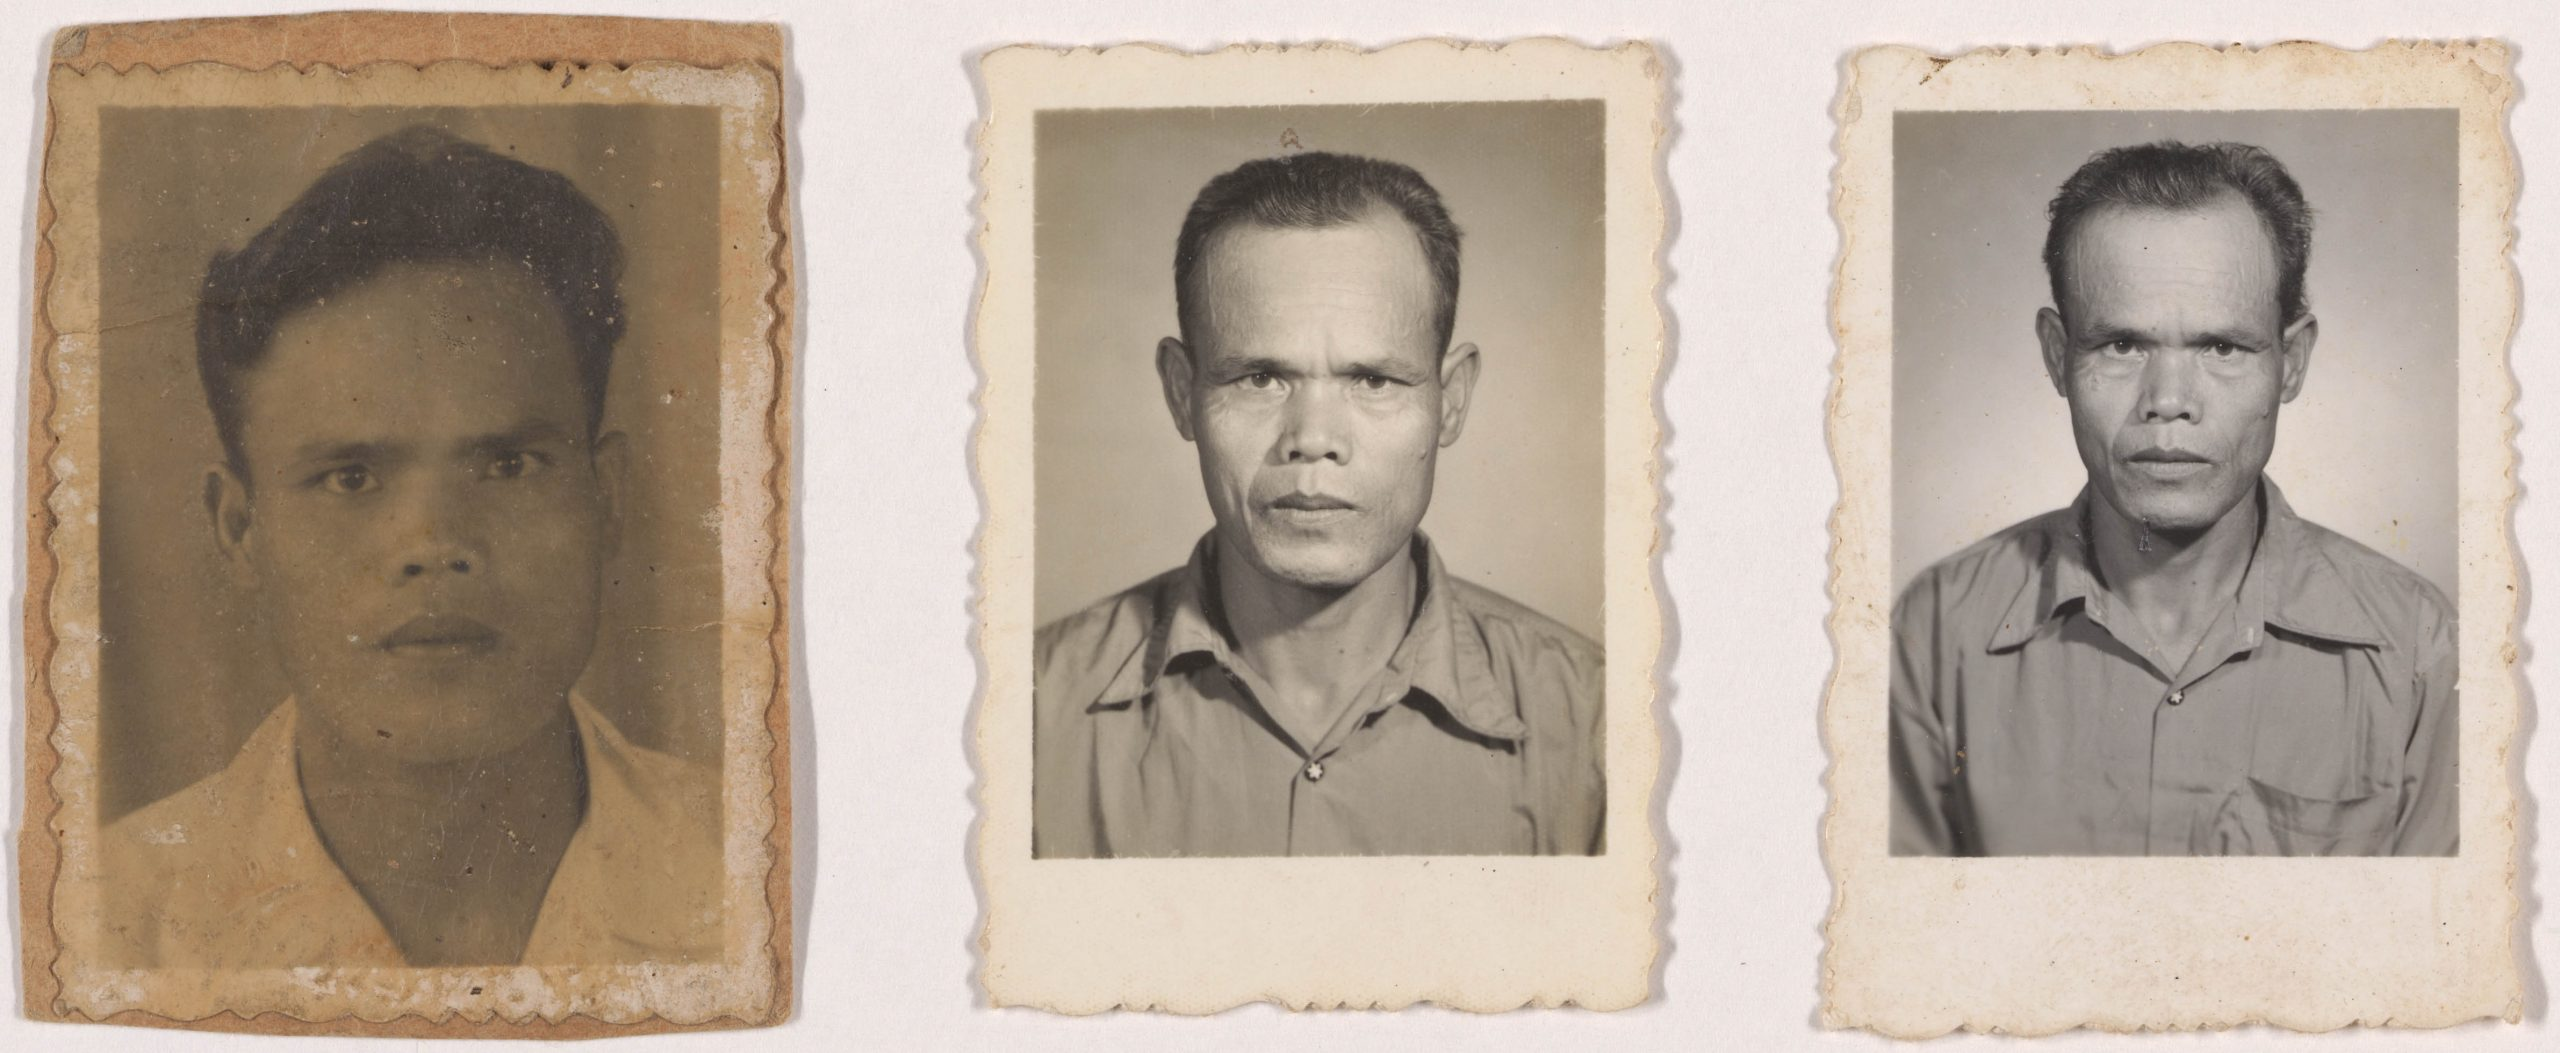 A Refugee's Journey from Cambodia to California: Kuy So's Unclaimed Property File